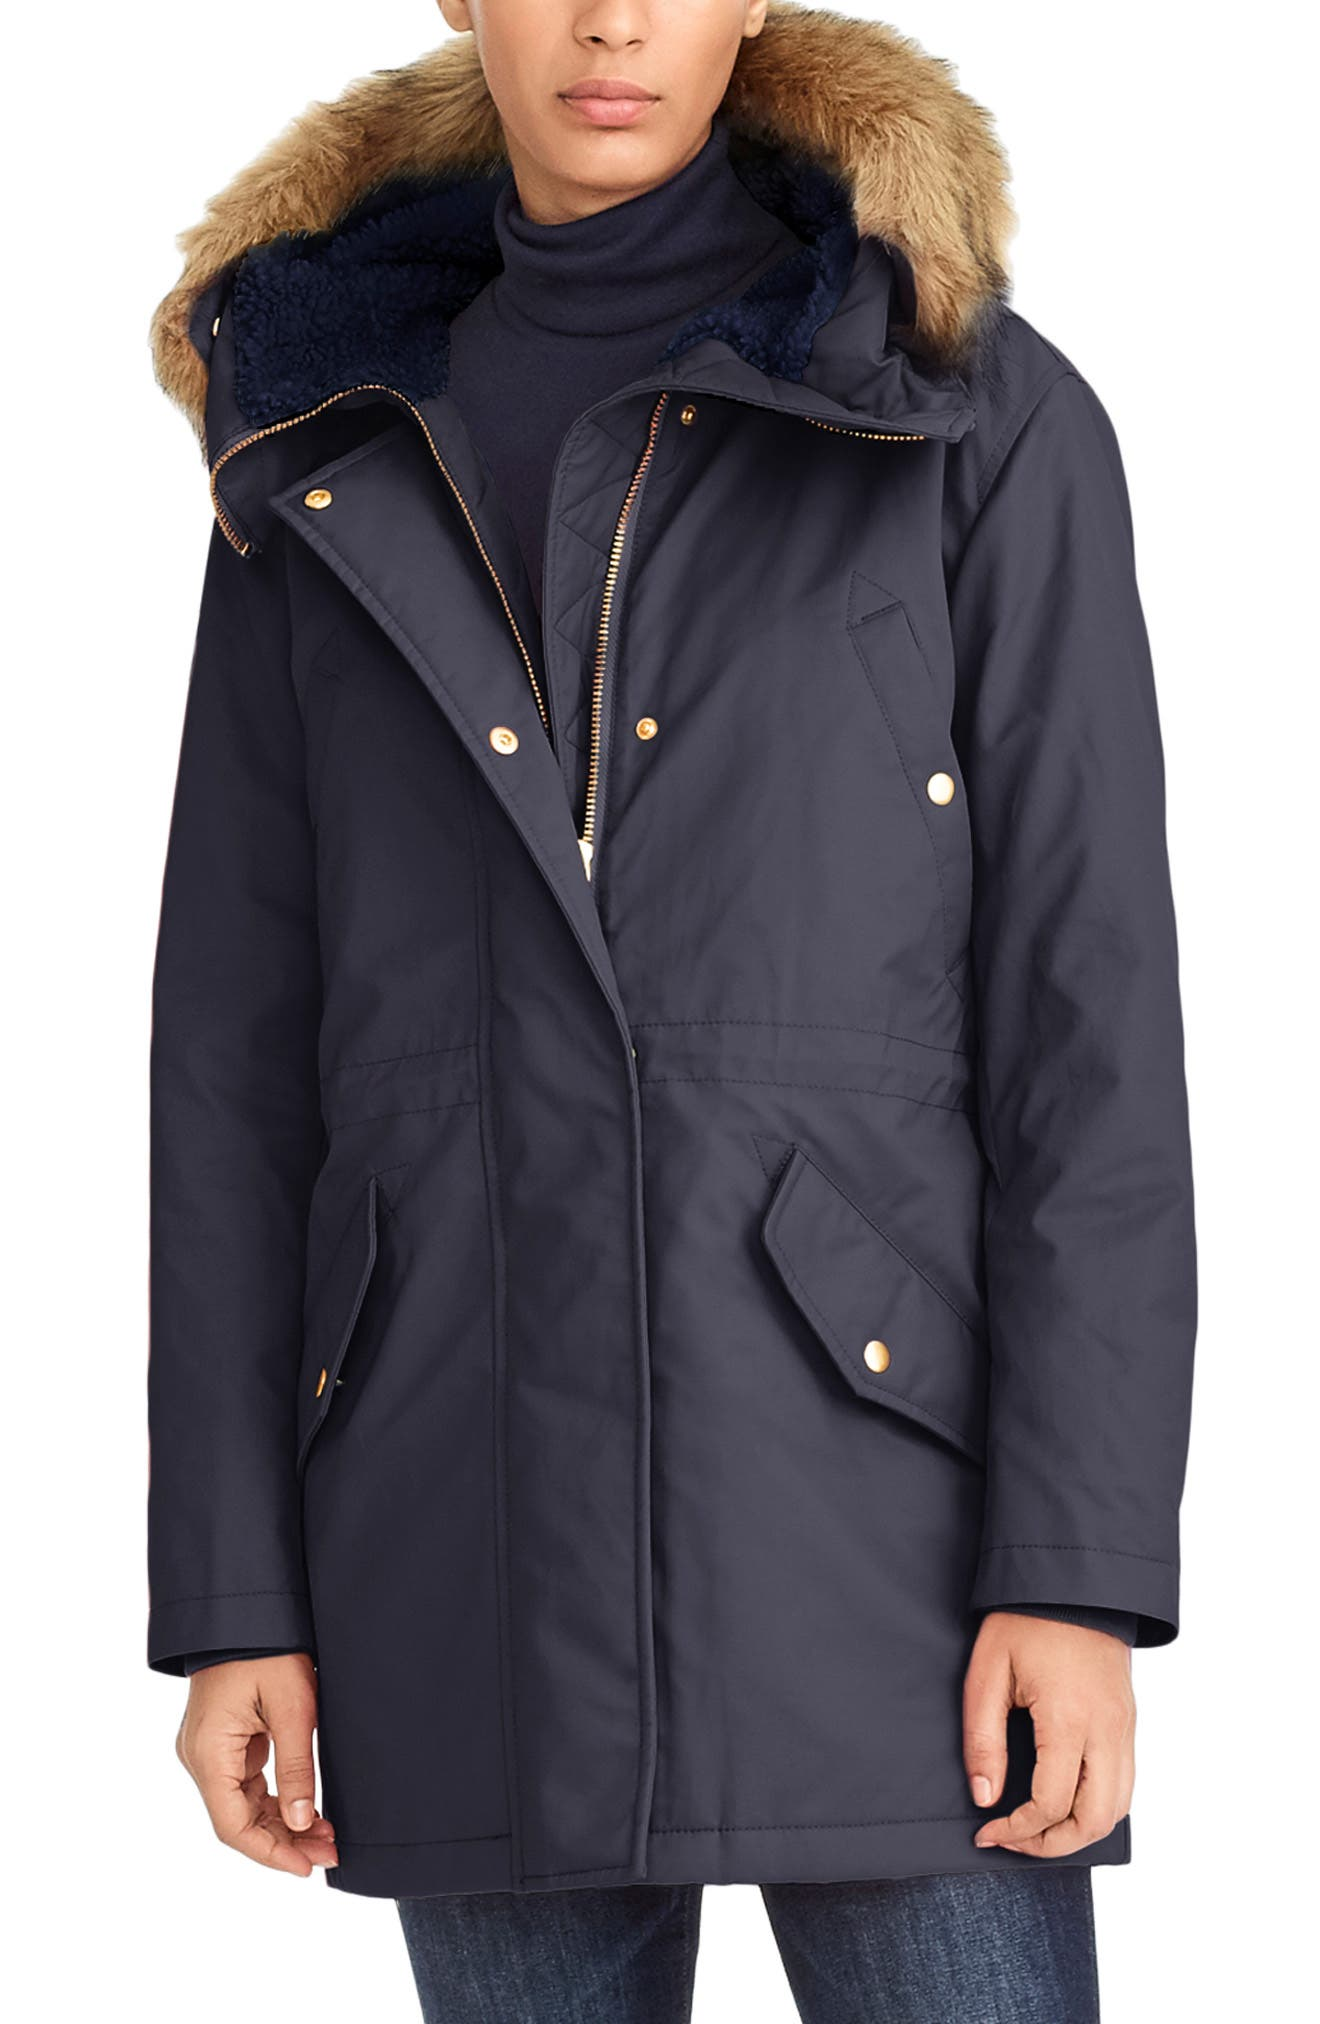 Perfect Winter Parka with Faux Fur Trim,                             Main thumbnail 1, color,                             NAVY